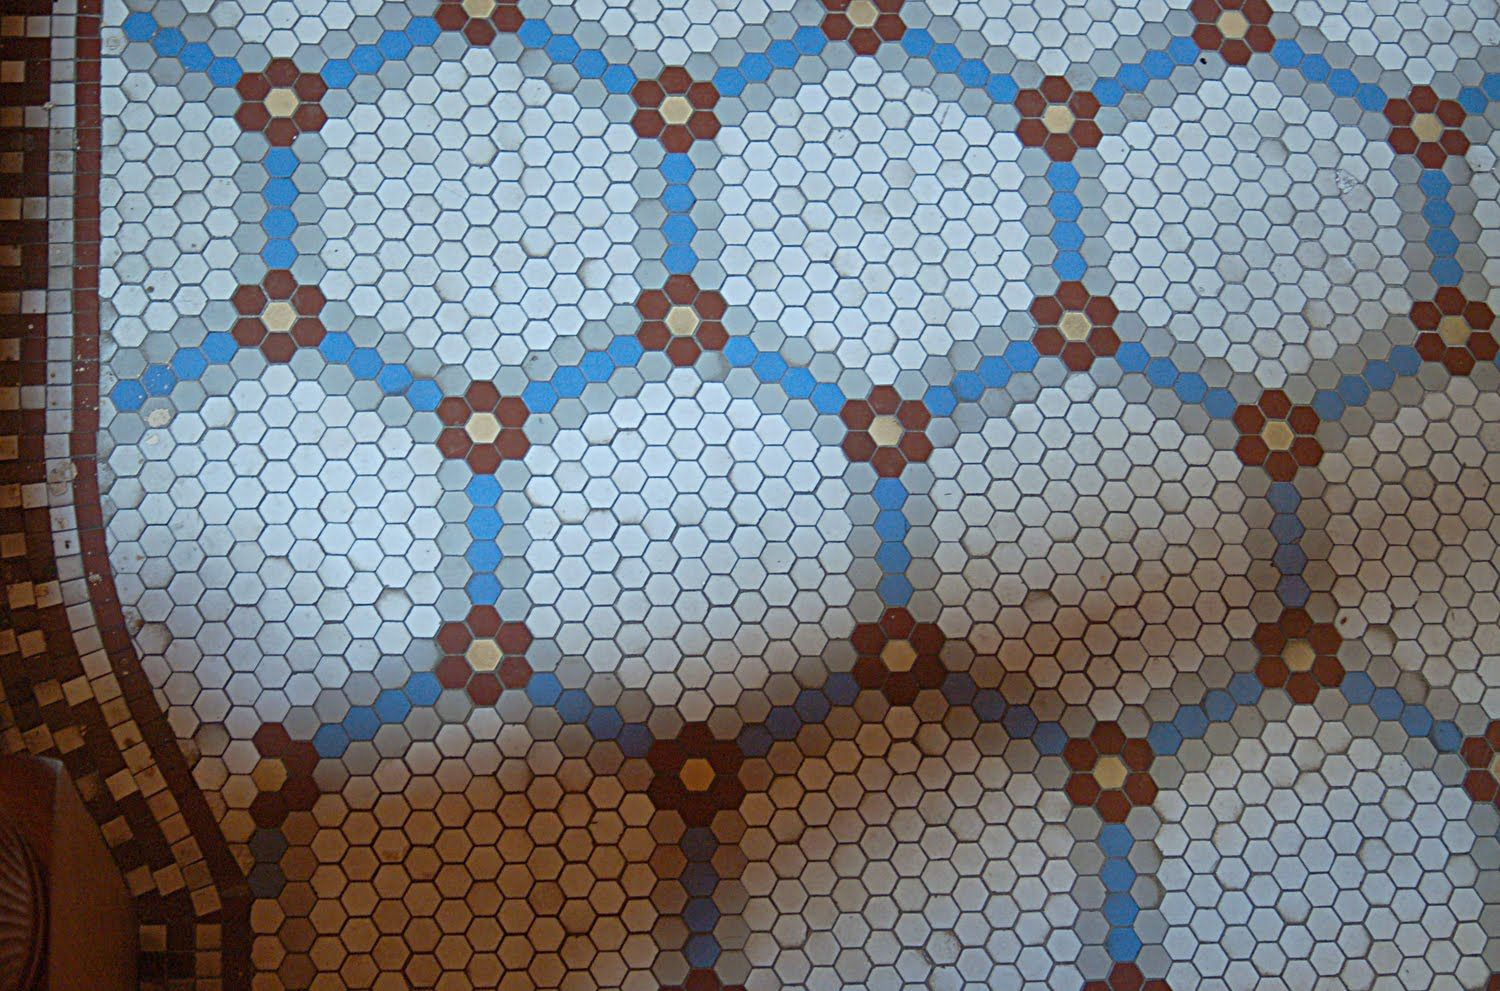 Disdressed hexagon obsession no better inspiration than floor design ideas elegant flooring design ideas for kitchen and bathroom areas with blue hexagon floor tile pattern dailygadgetfo Images